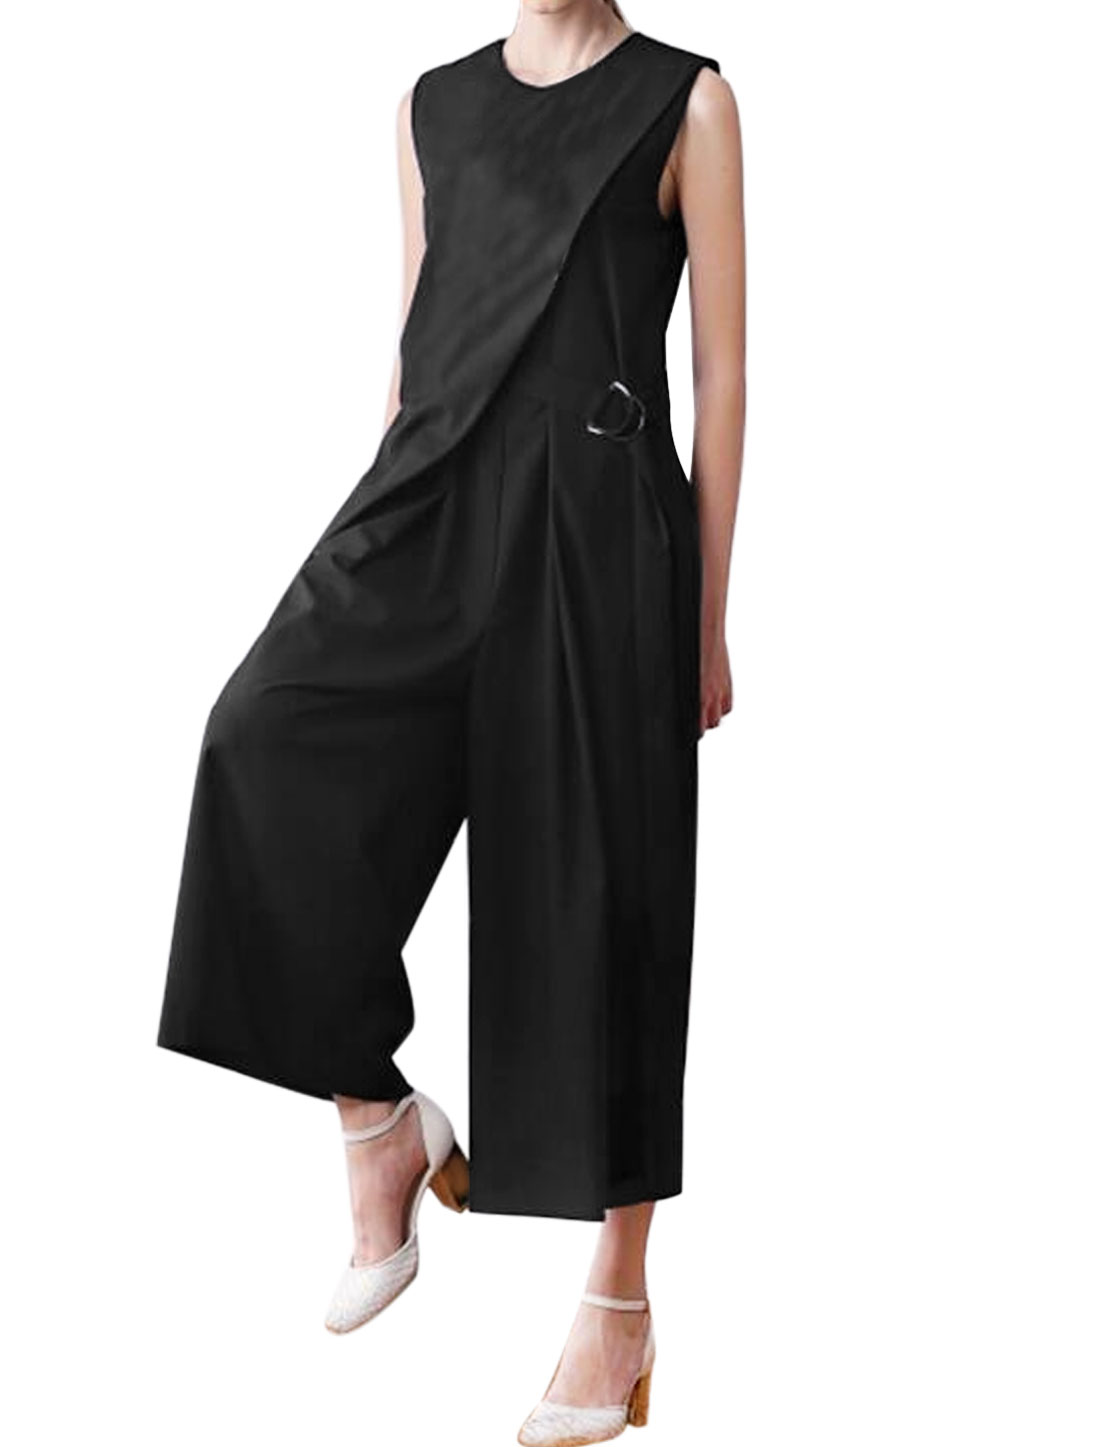 Belted Layered Design Sleeveless Cropped Wide Leg Jumpsuit Black M